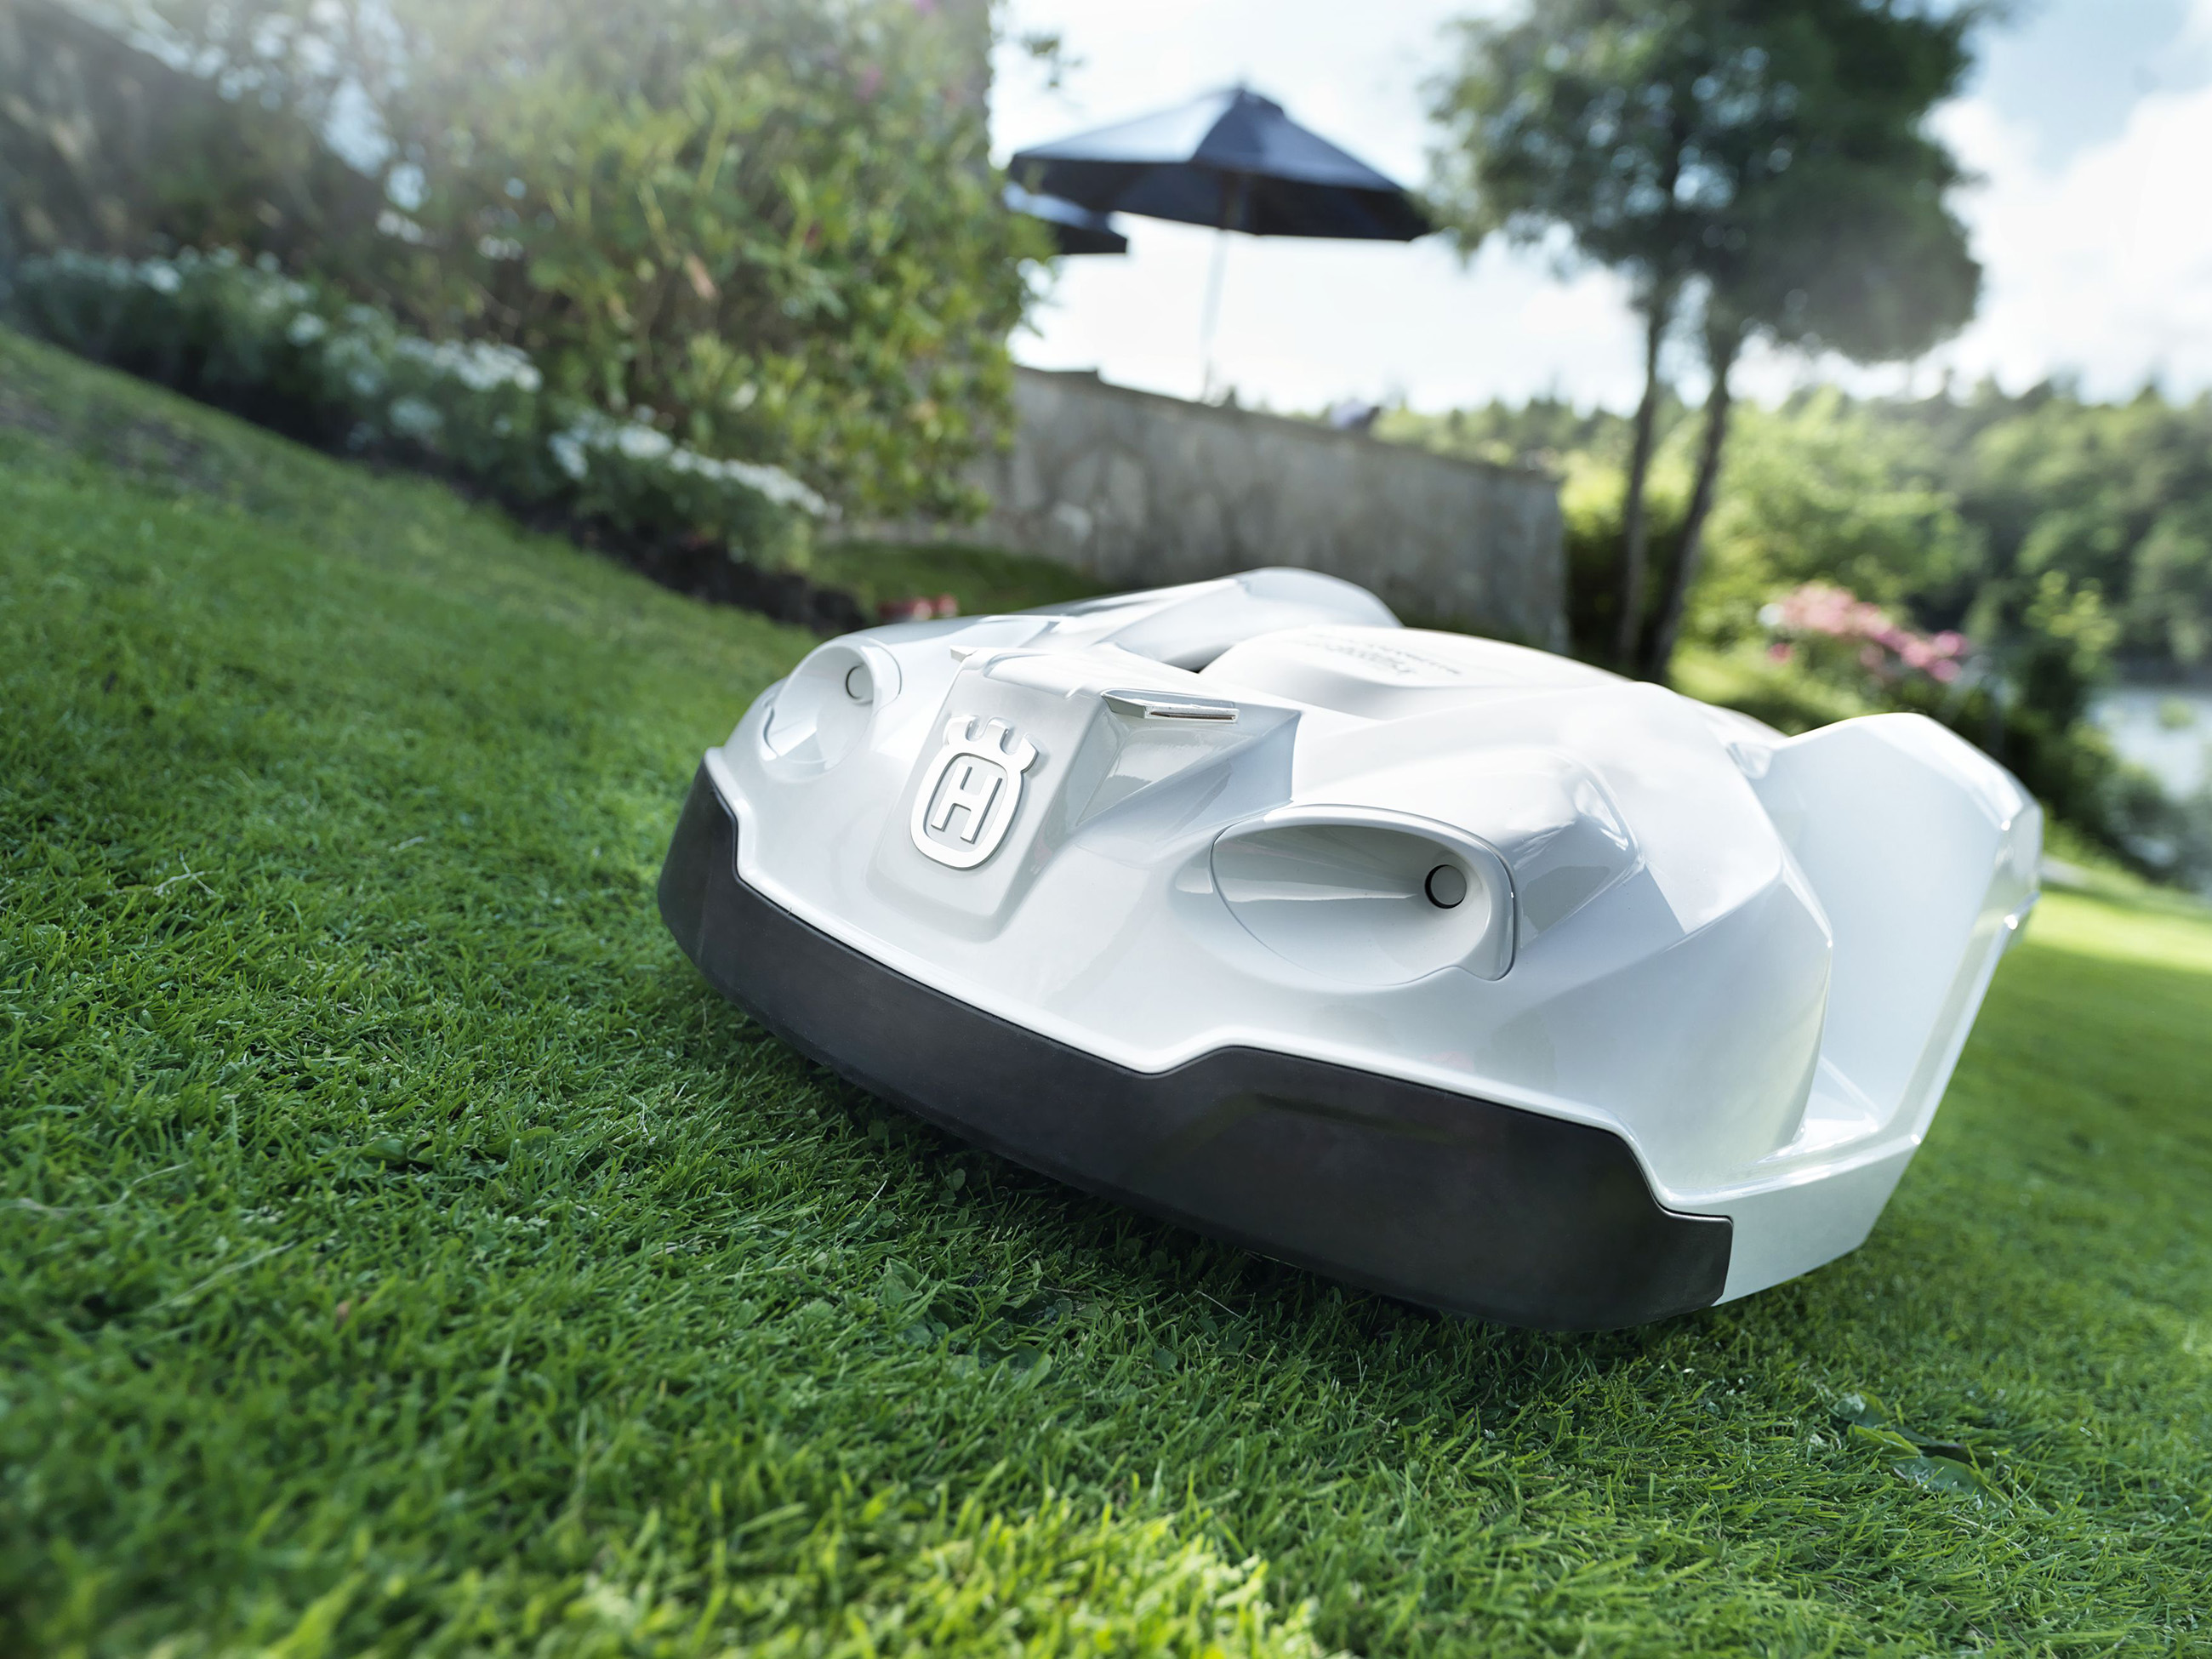 husqvarna launches first apple watch app for robotic mowers. Black Bedroom Furniture Sets. Home Design Ideas